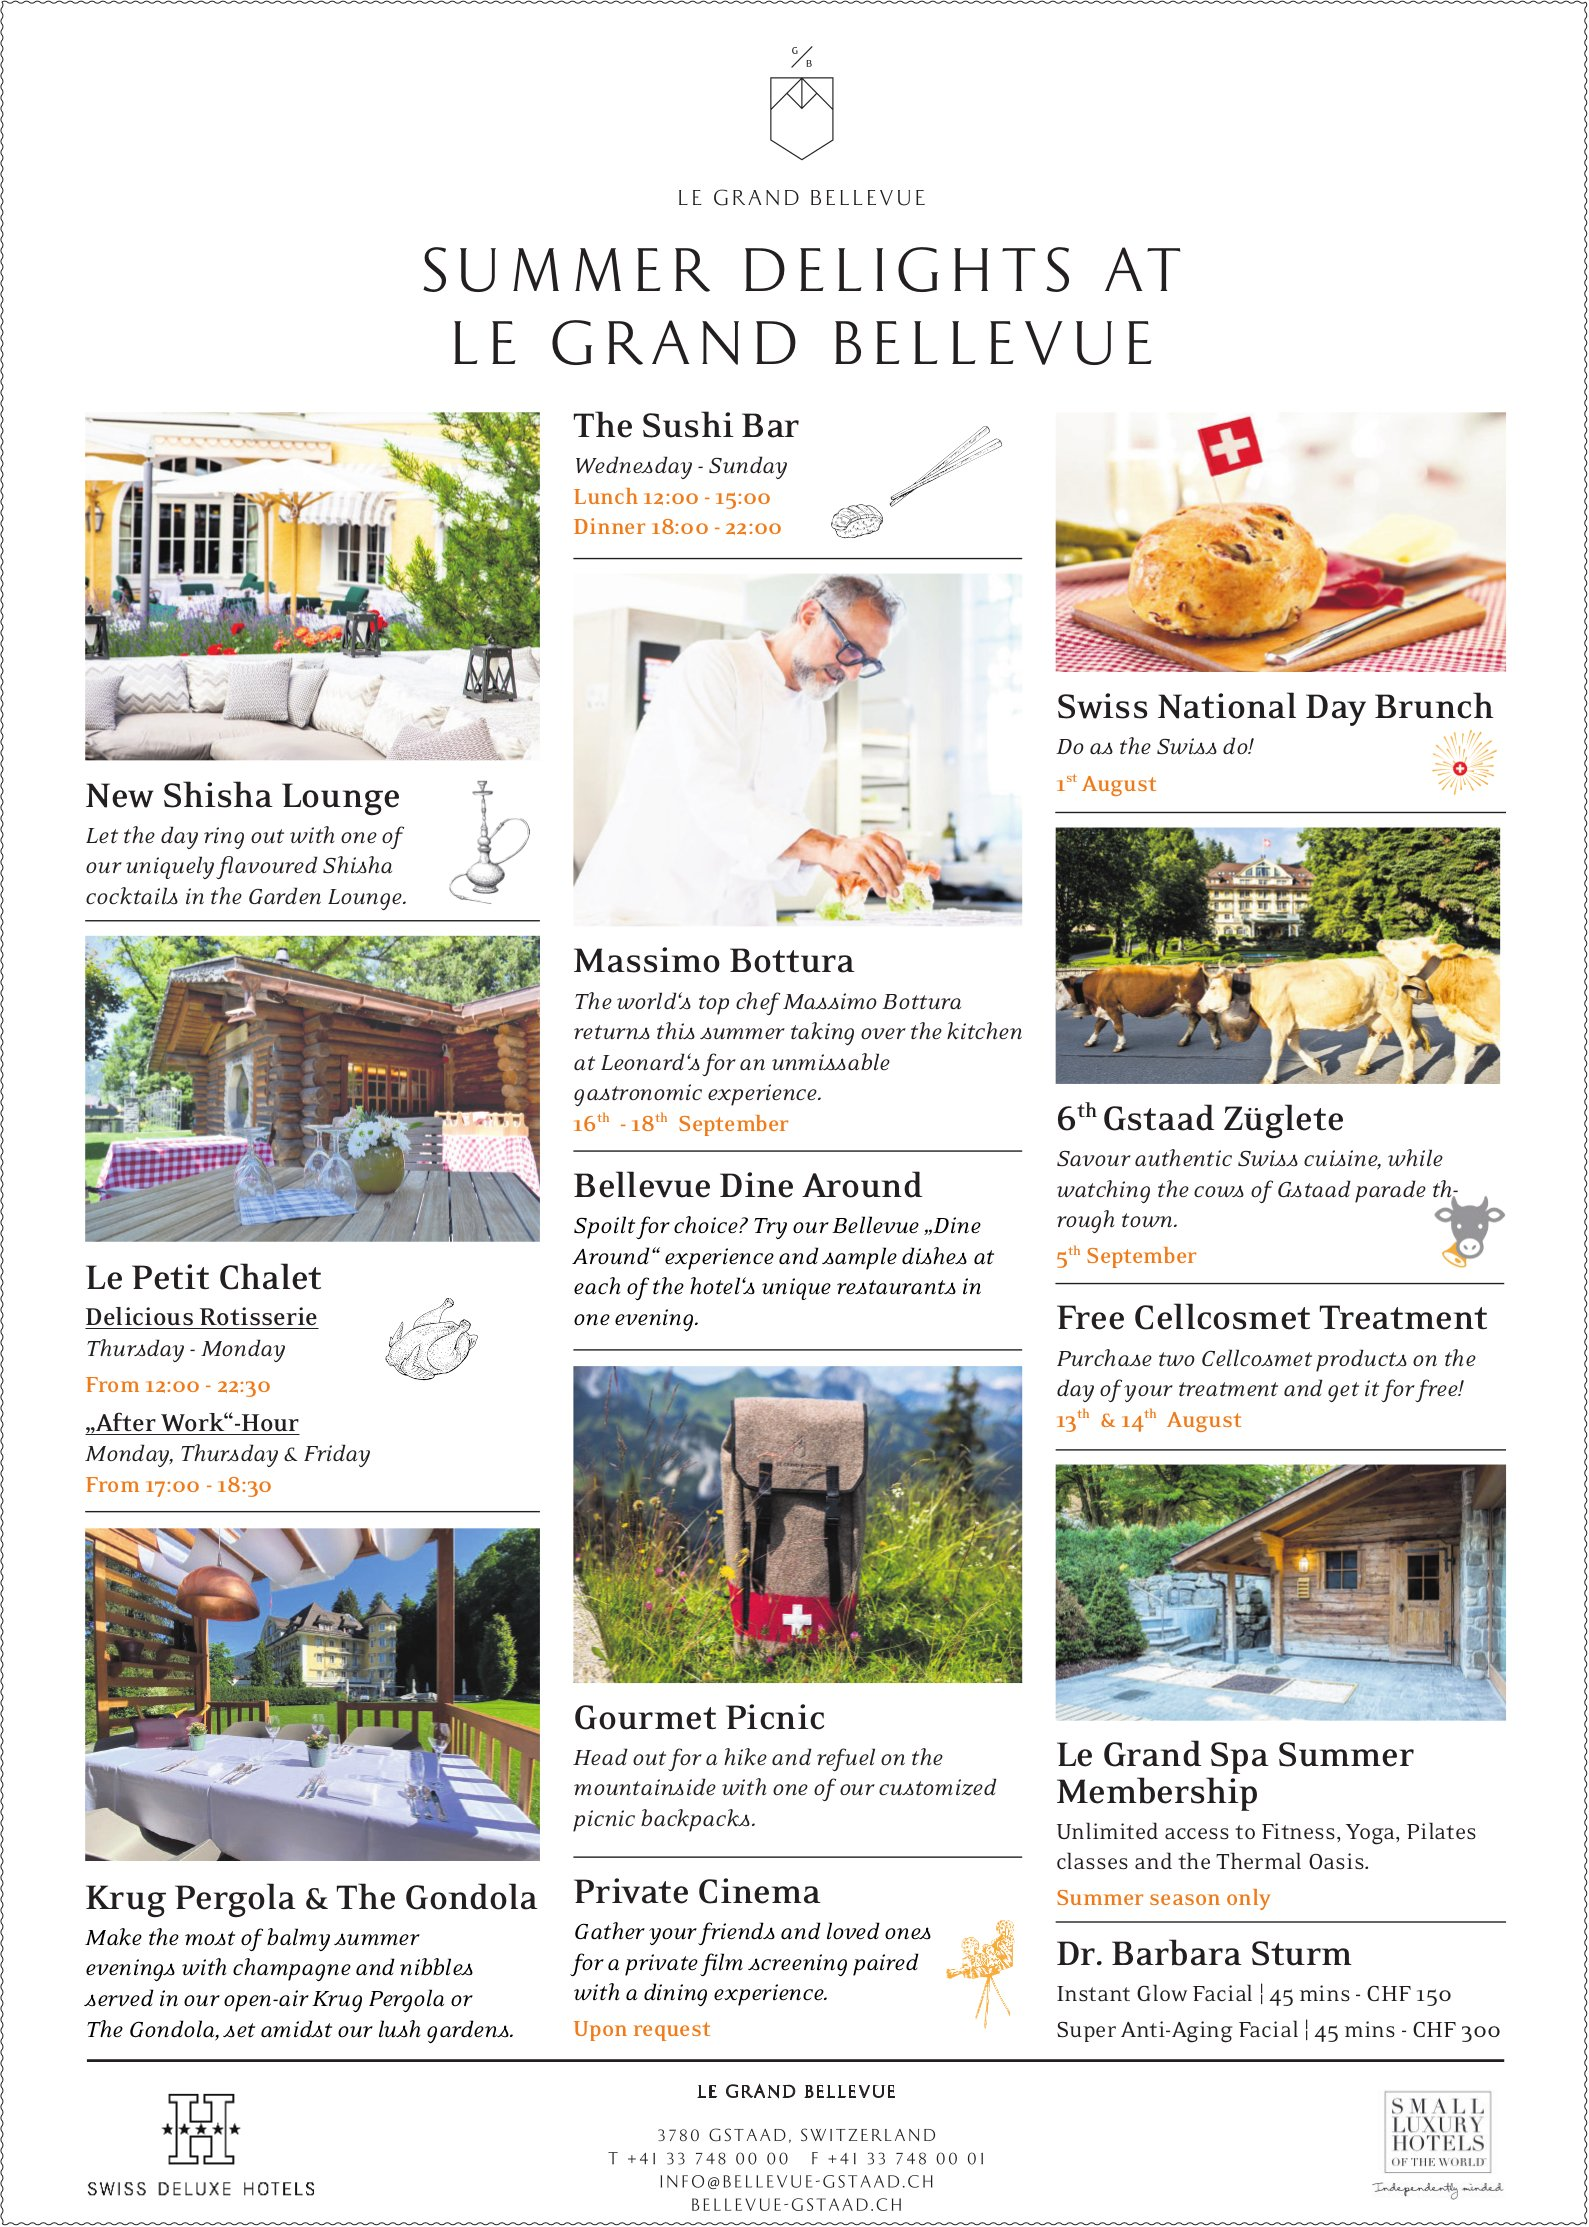 Summer Delights at Le Grand Bellevue, Gstaad